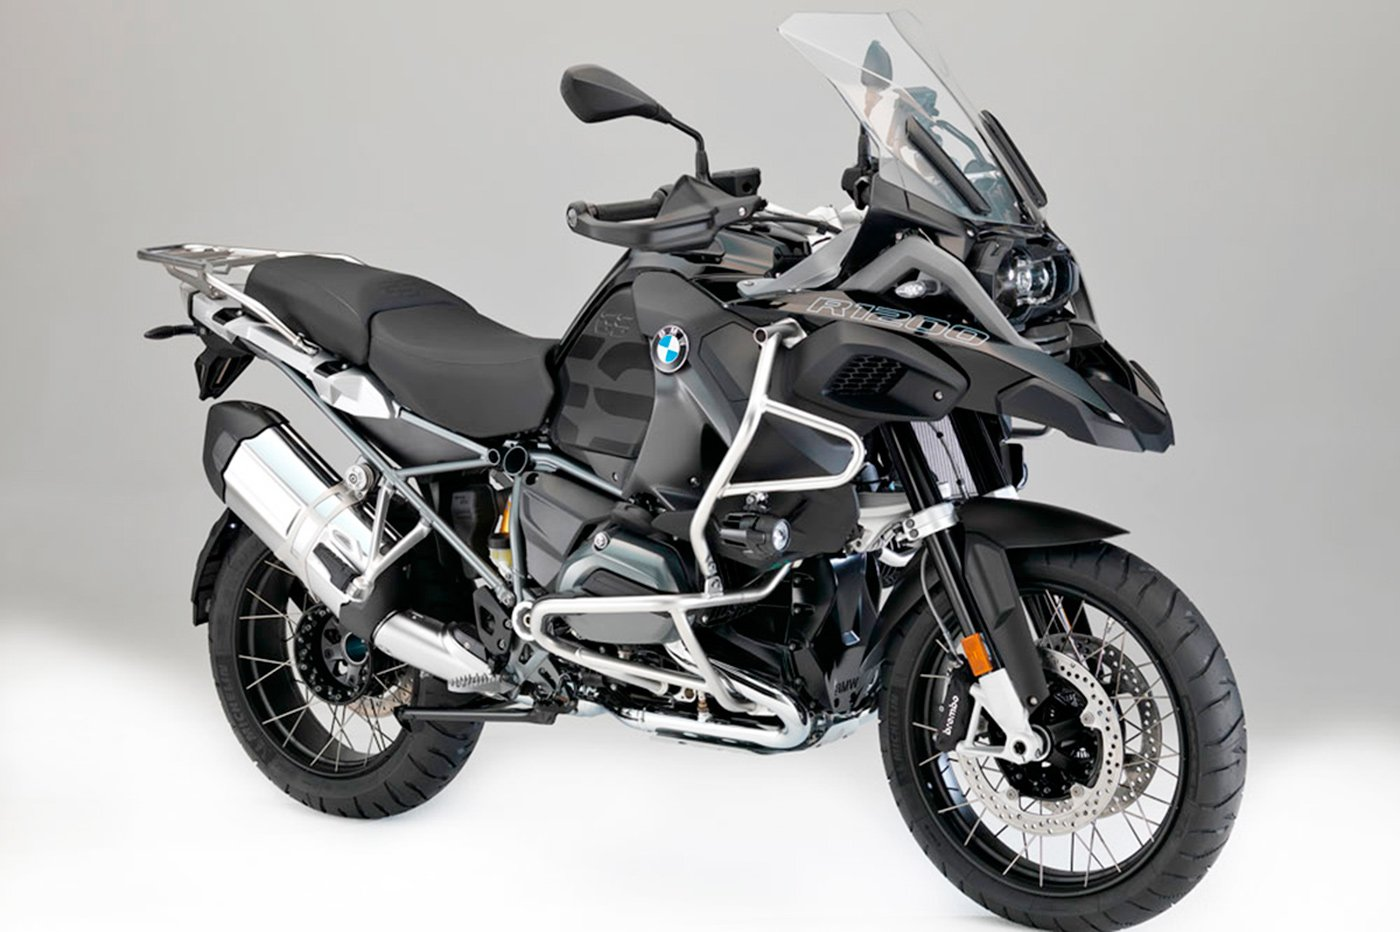 bmw r 1200 gs adventure triple black. Black Bedroom Furniture Sets. Home Design Ideas